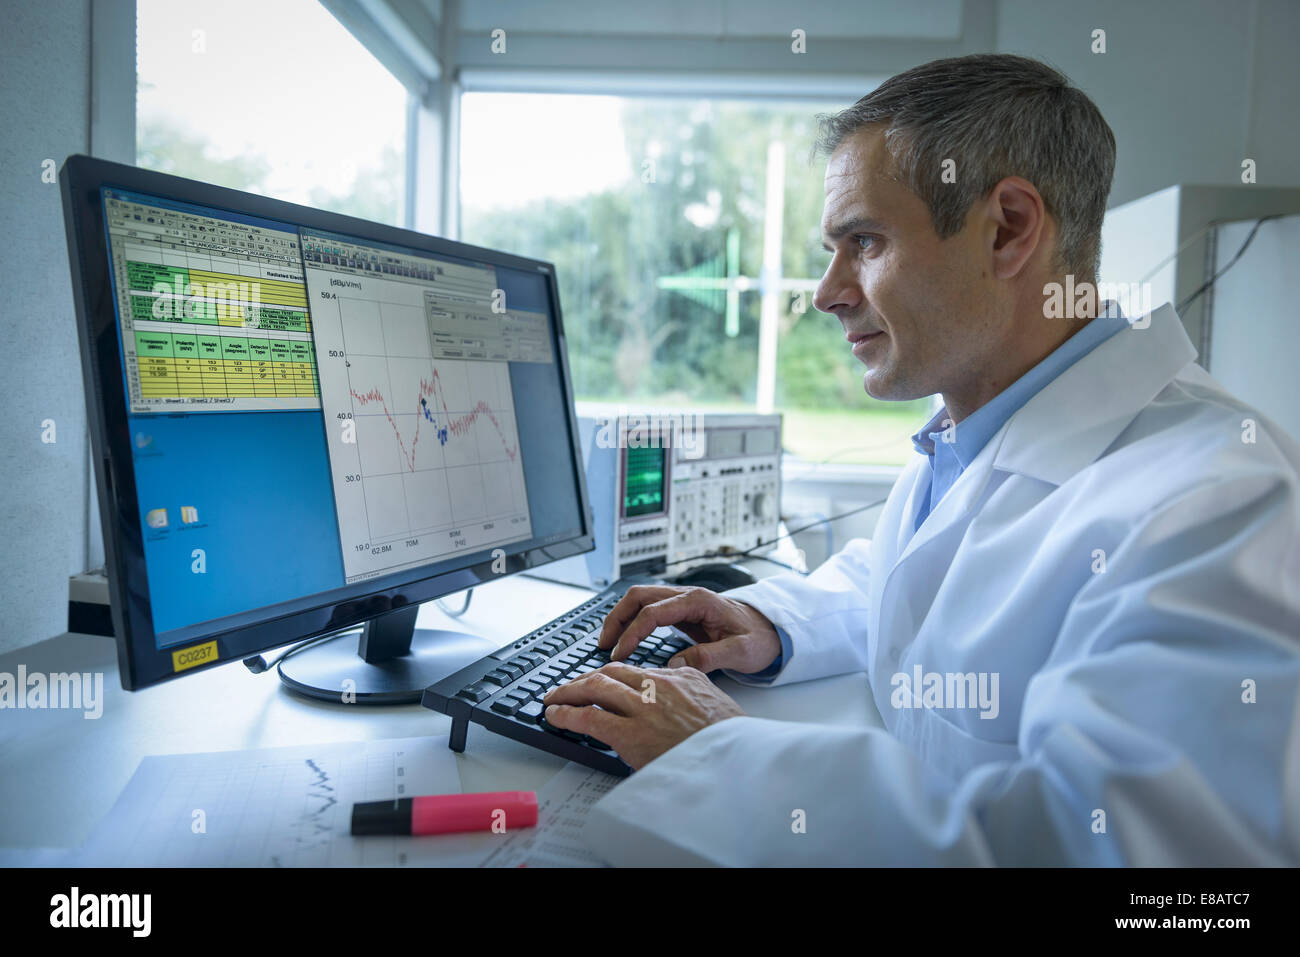 Scientist using computer to study electromagnetic interference results - Stock Image